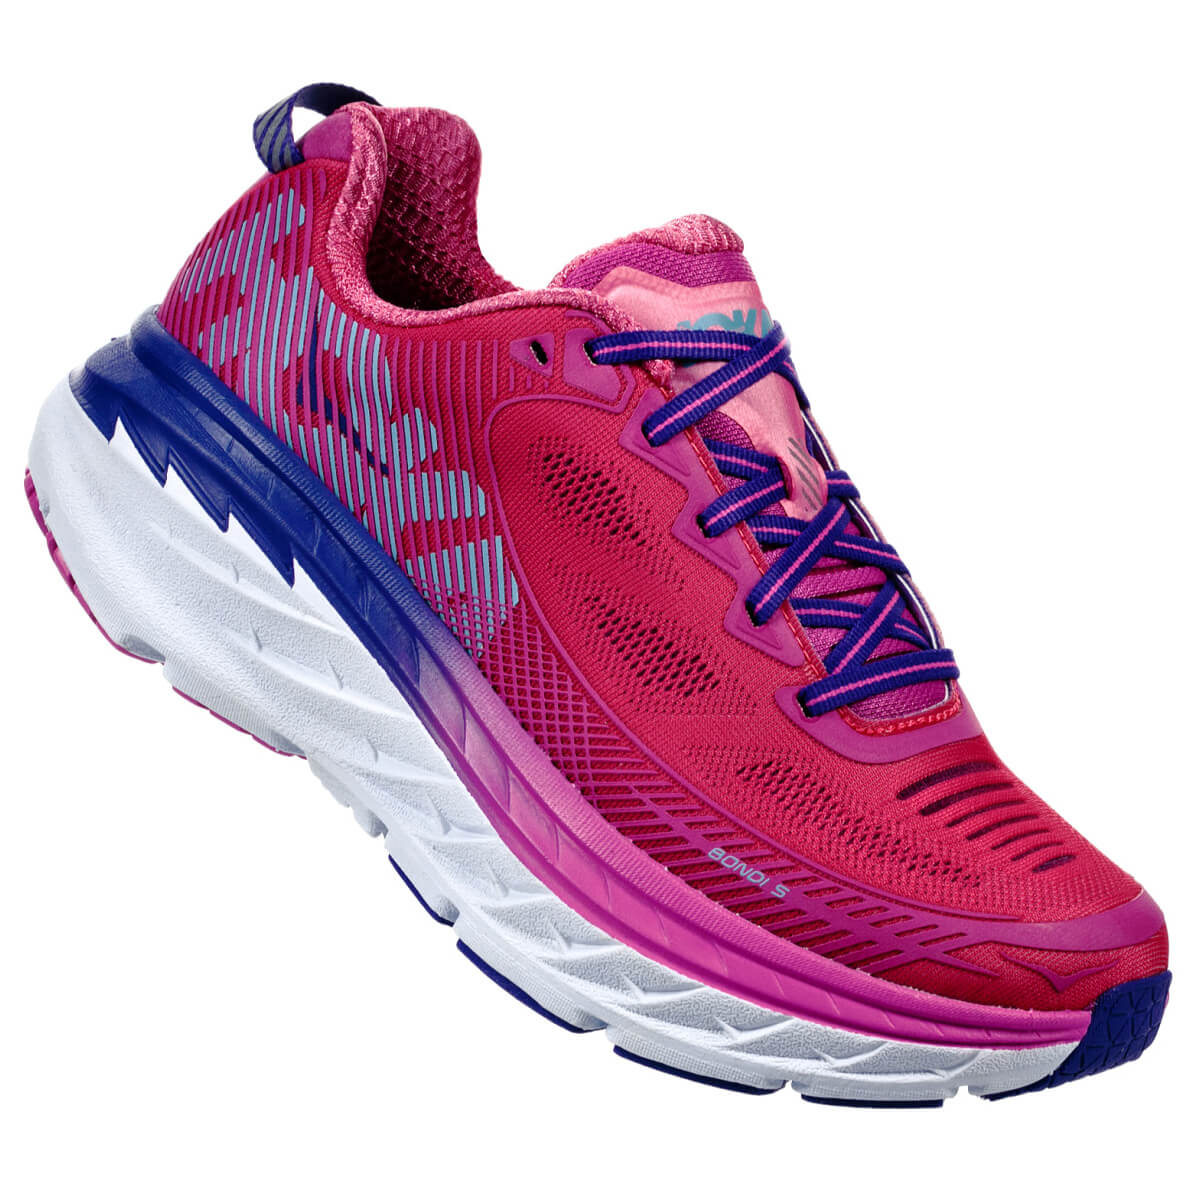 Hoka Women S Shoes Amazon